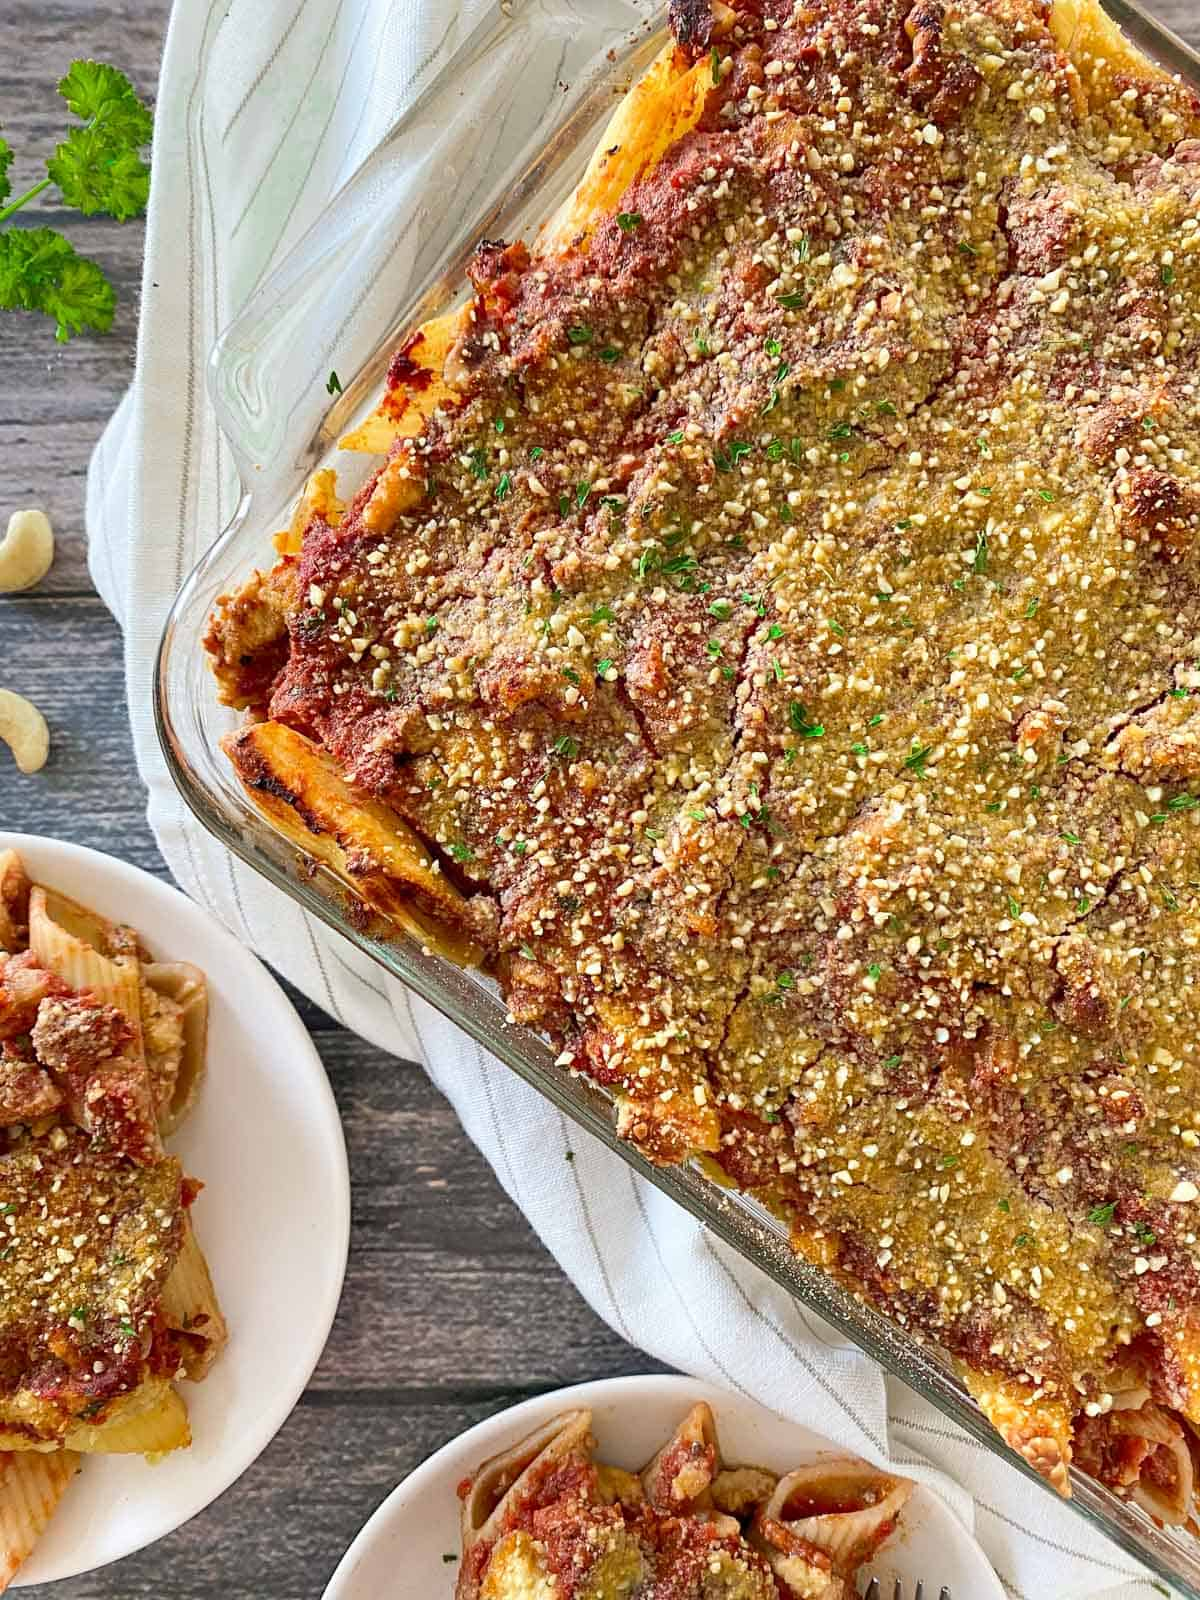 Casserole dish with baked pasta, vegan cheese and parsley sprinkled on top.